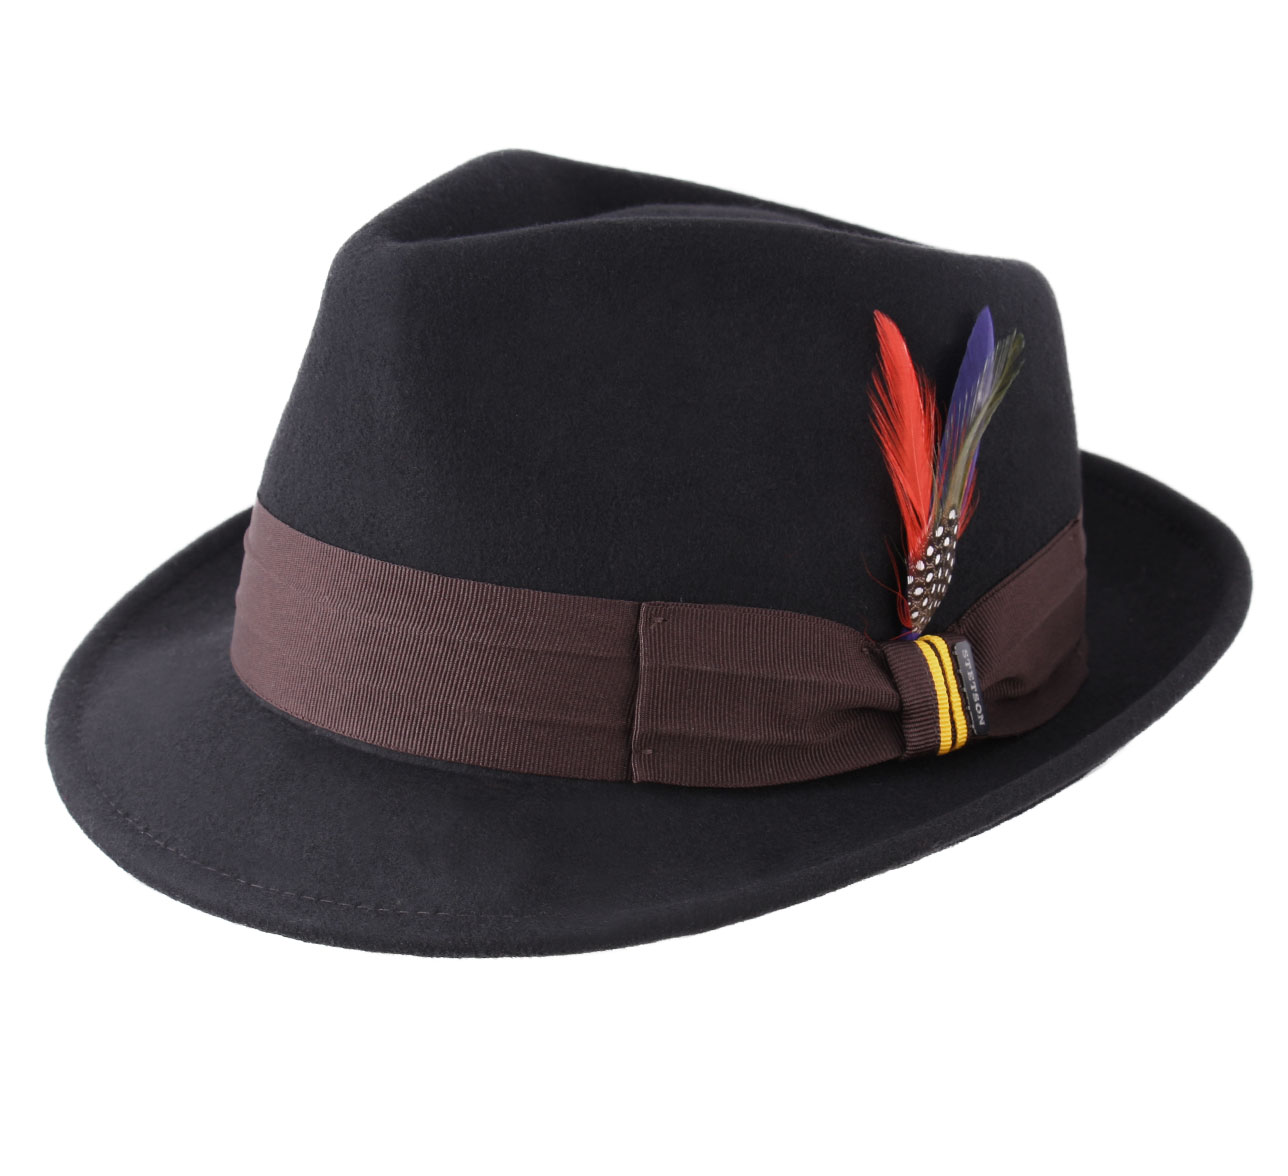 63627fc3 Paul's habit - Hats Stetson